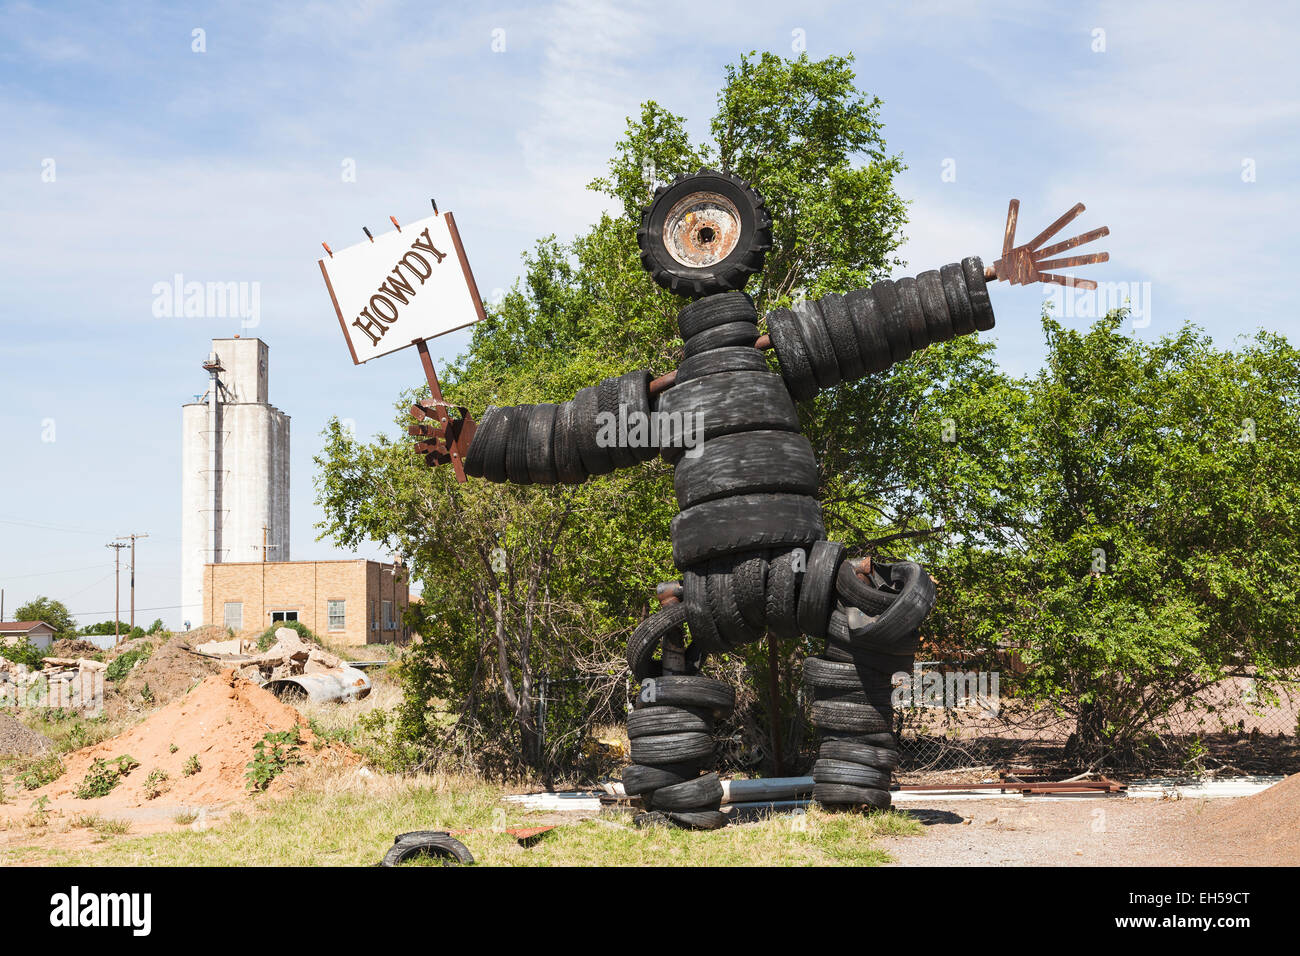 Sculpture of a man made from used automobile, truck and tractor tires in Roosevelt, Oklahoma holding a Howdy sign. Stock Photo